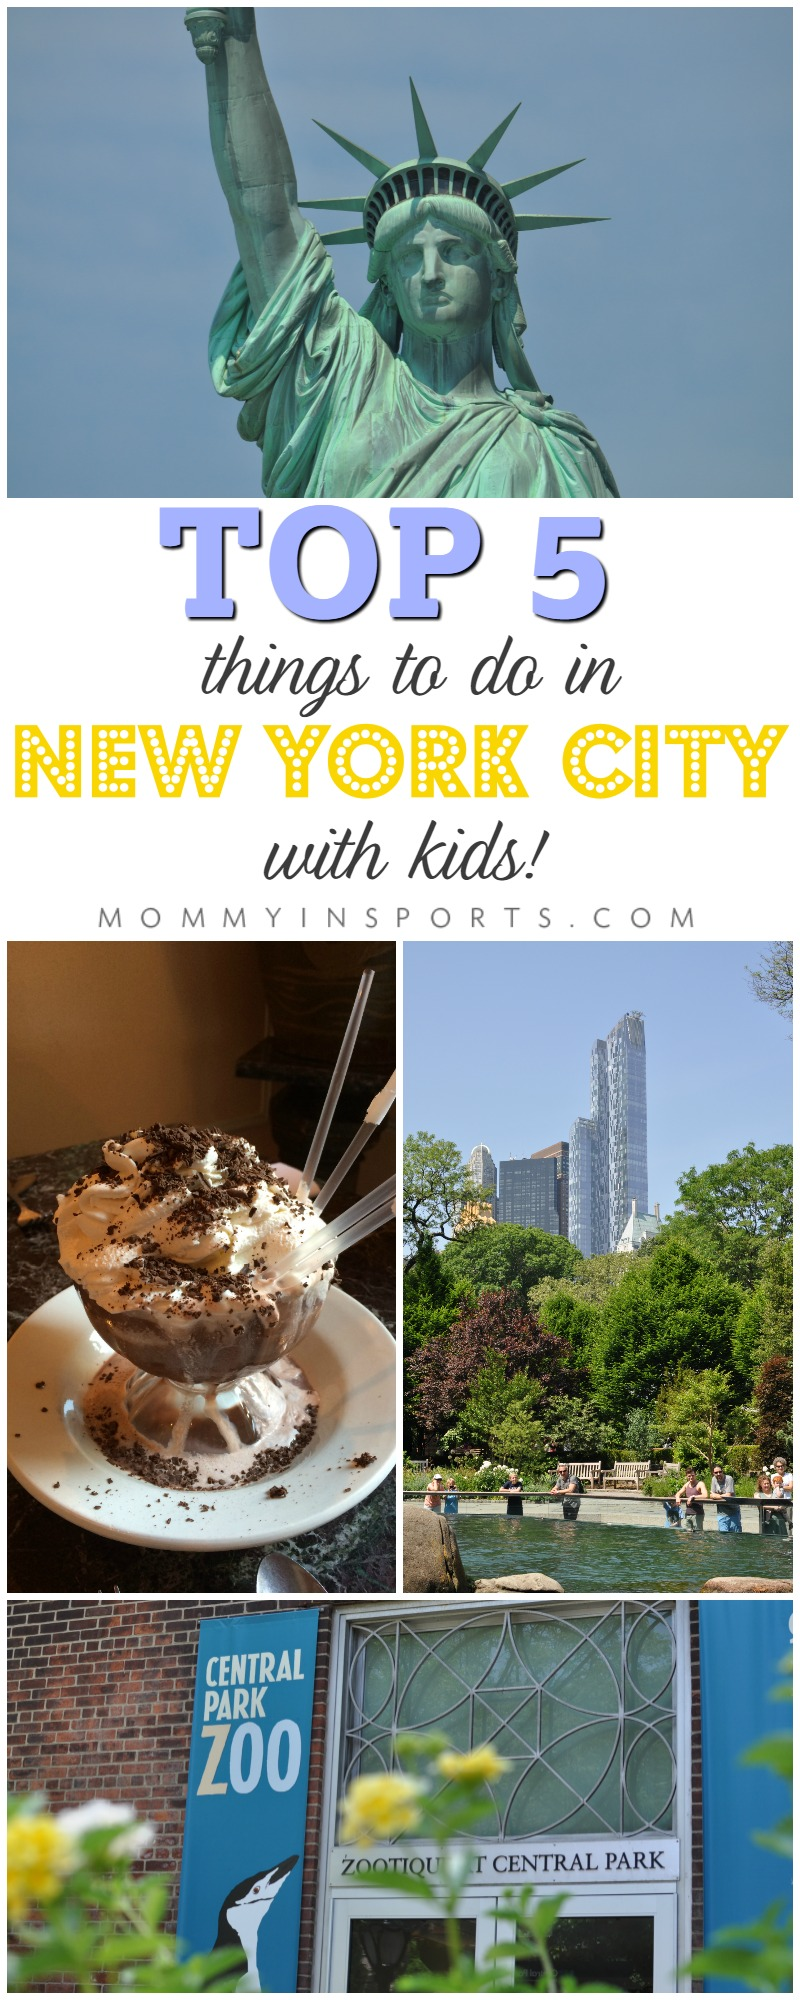 Top 5 things to do in new york city with kids kristen hewitt for New york thing to do